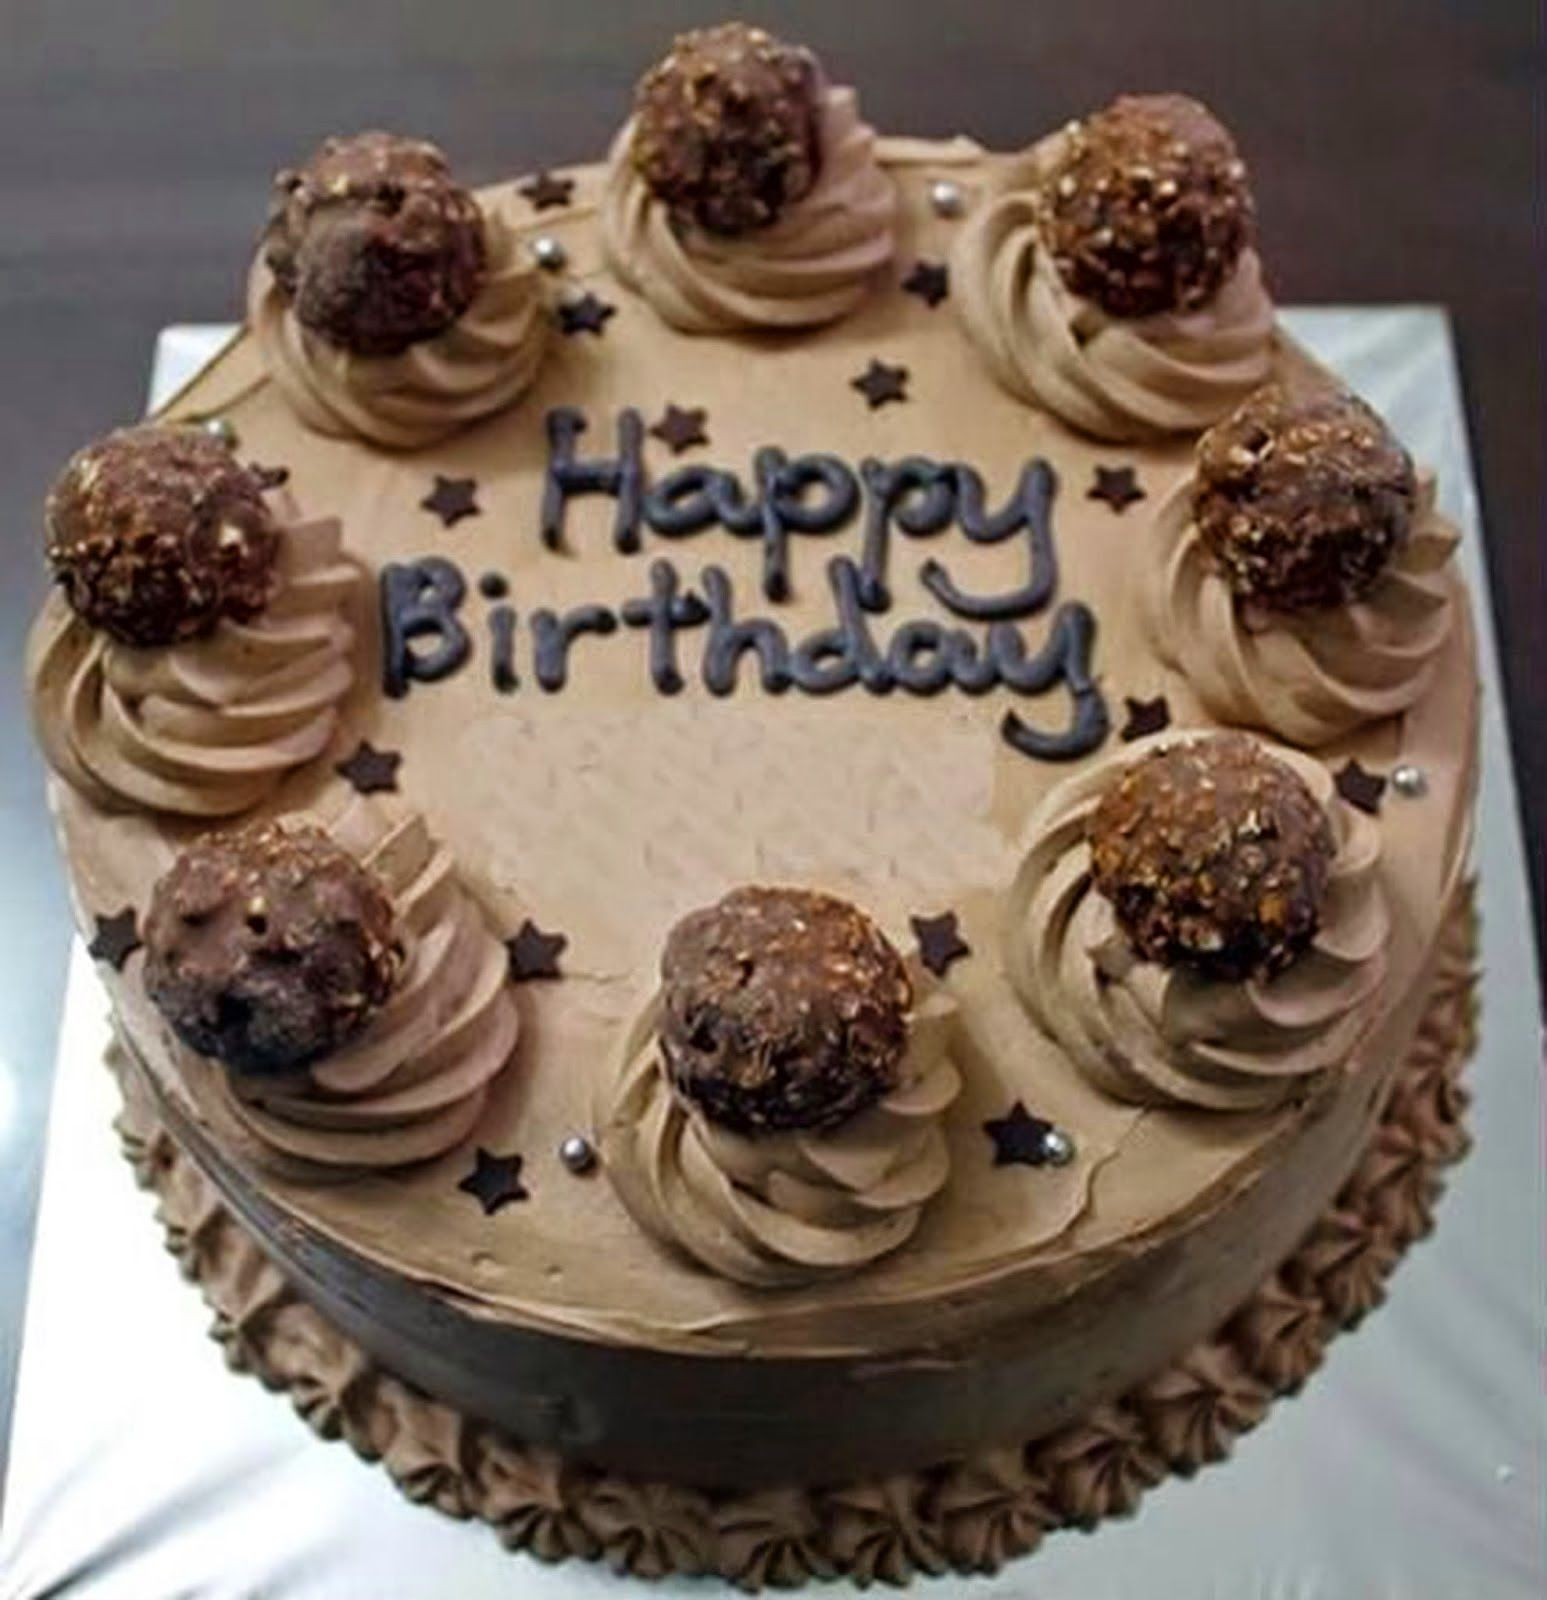 2017 Happy Birthday Chocolate Cake Image Jpg 1547 1600 With